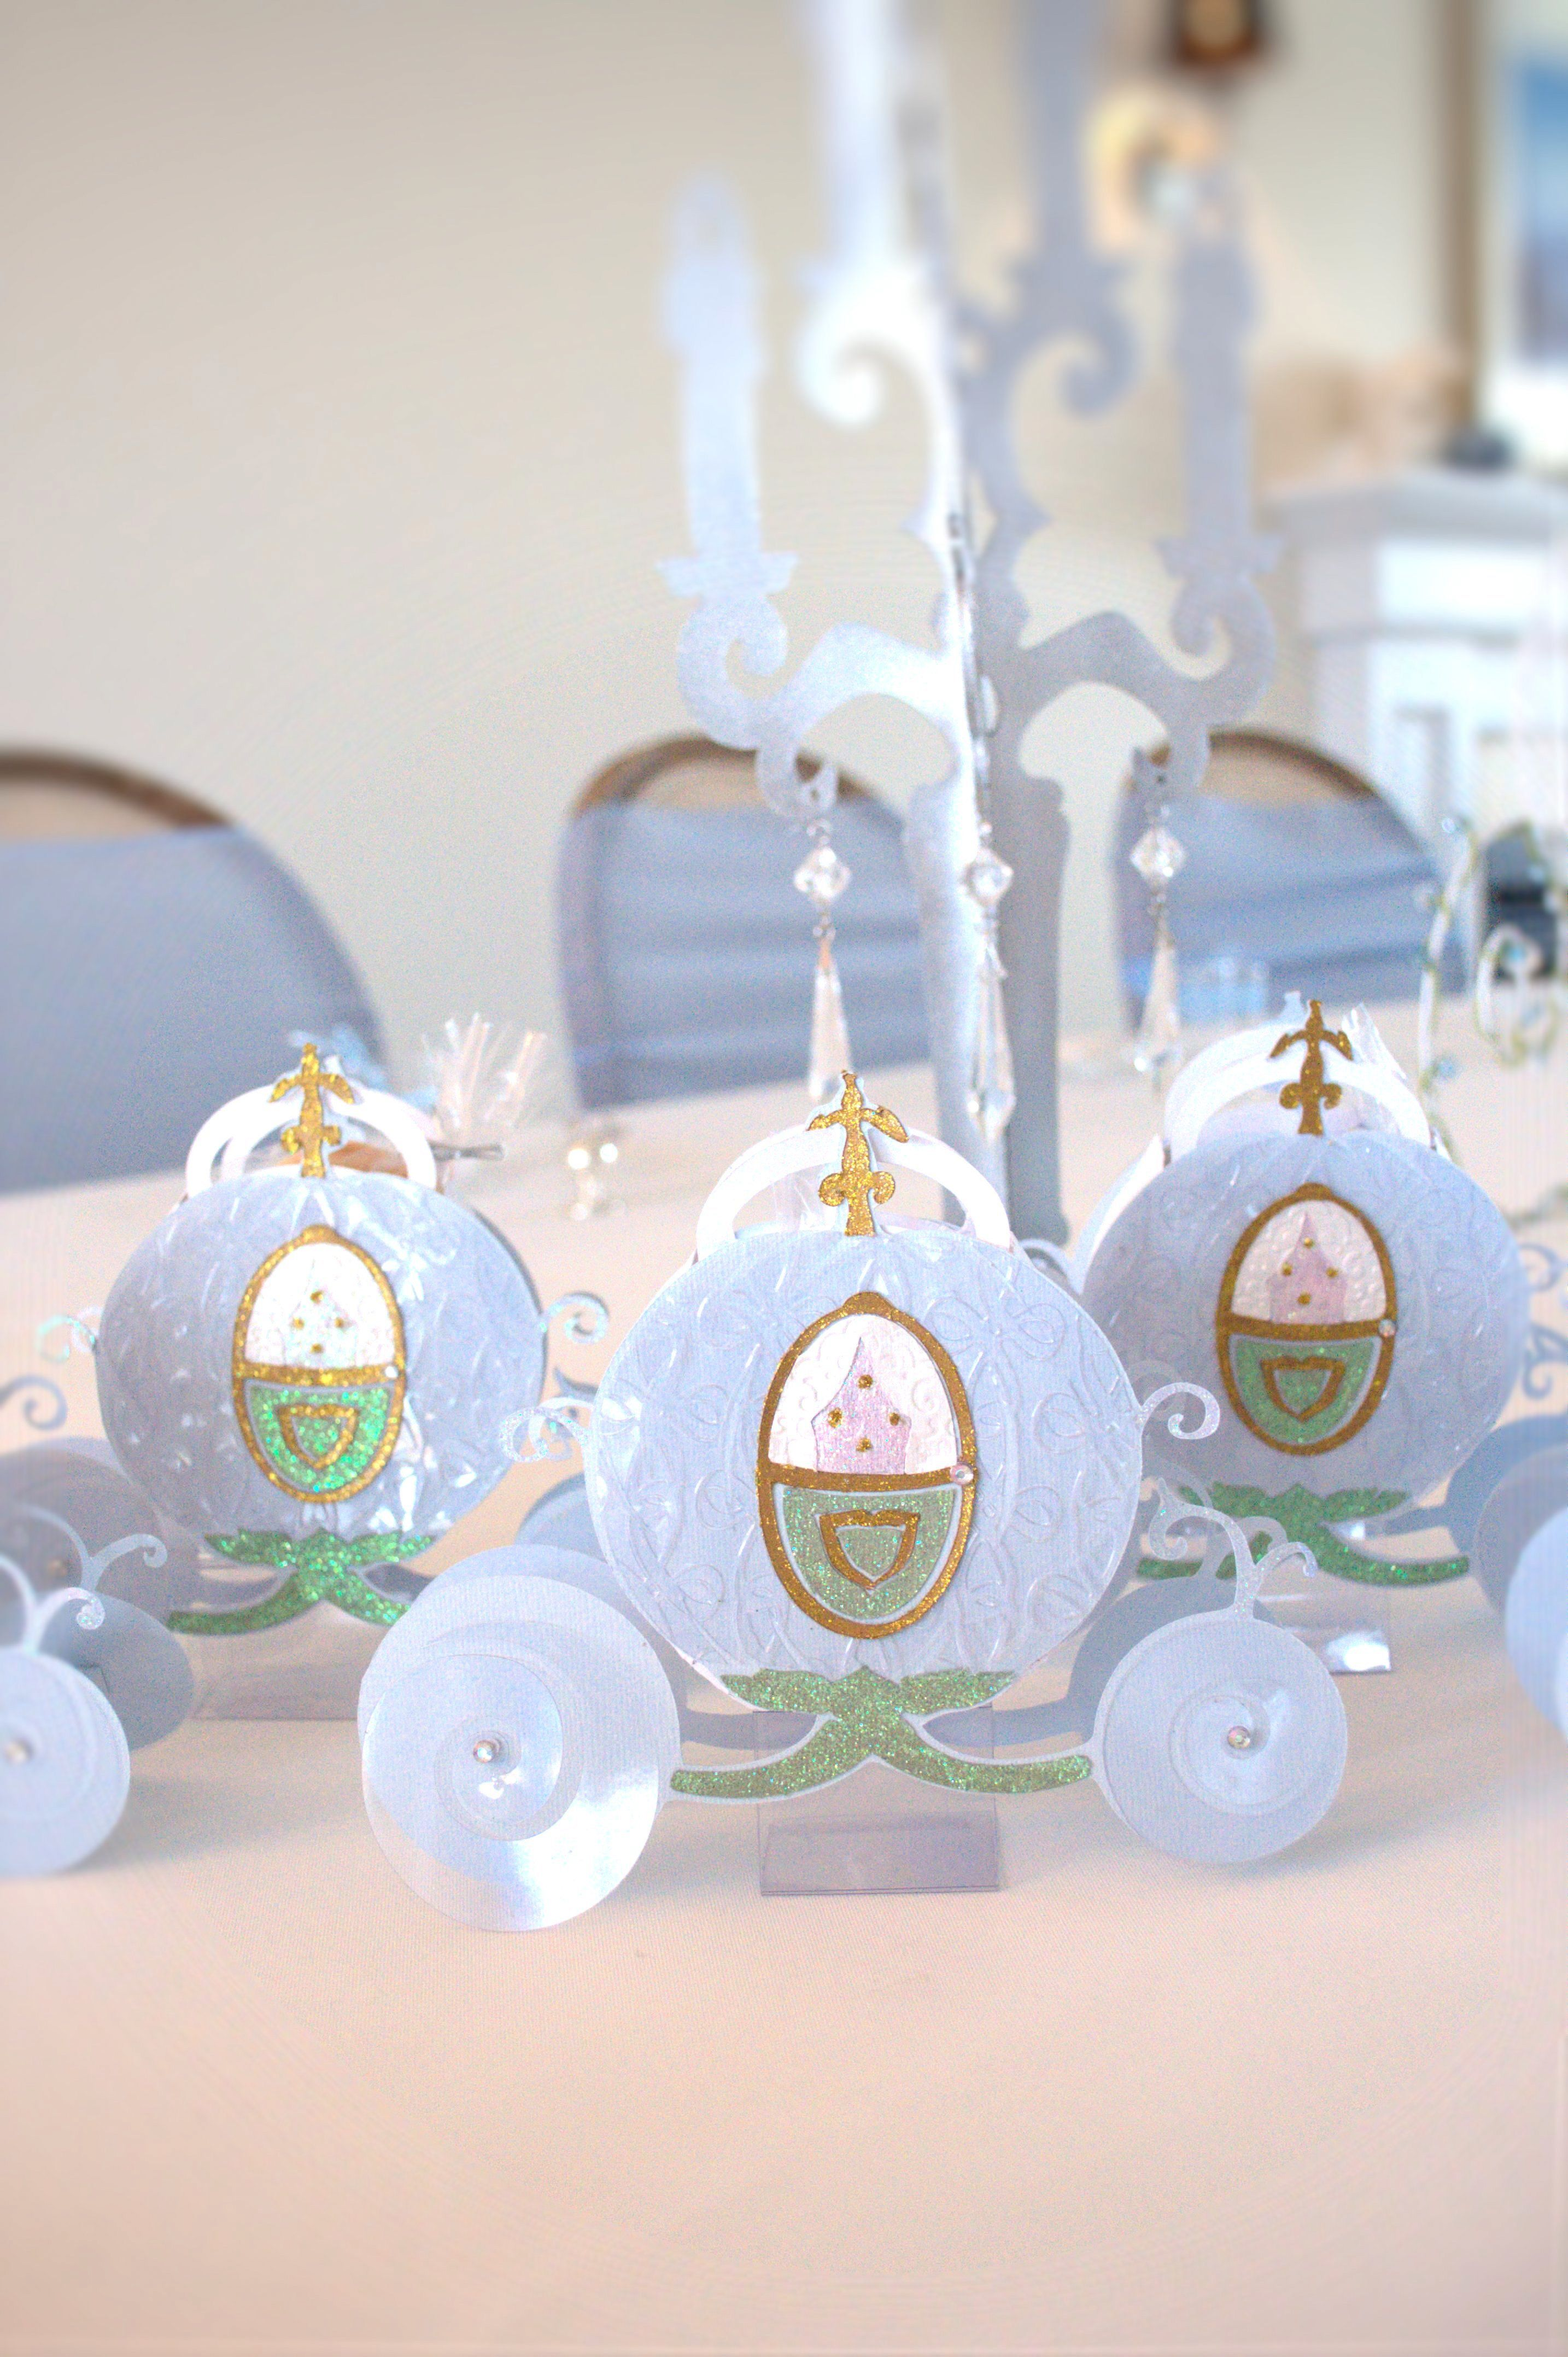 Dorable Cinderella Carriage Wedding Favors Image Collection - Blue ...